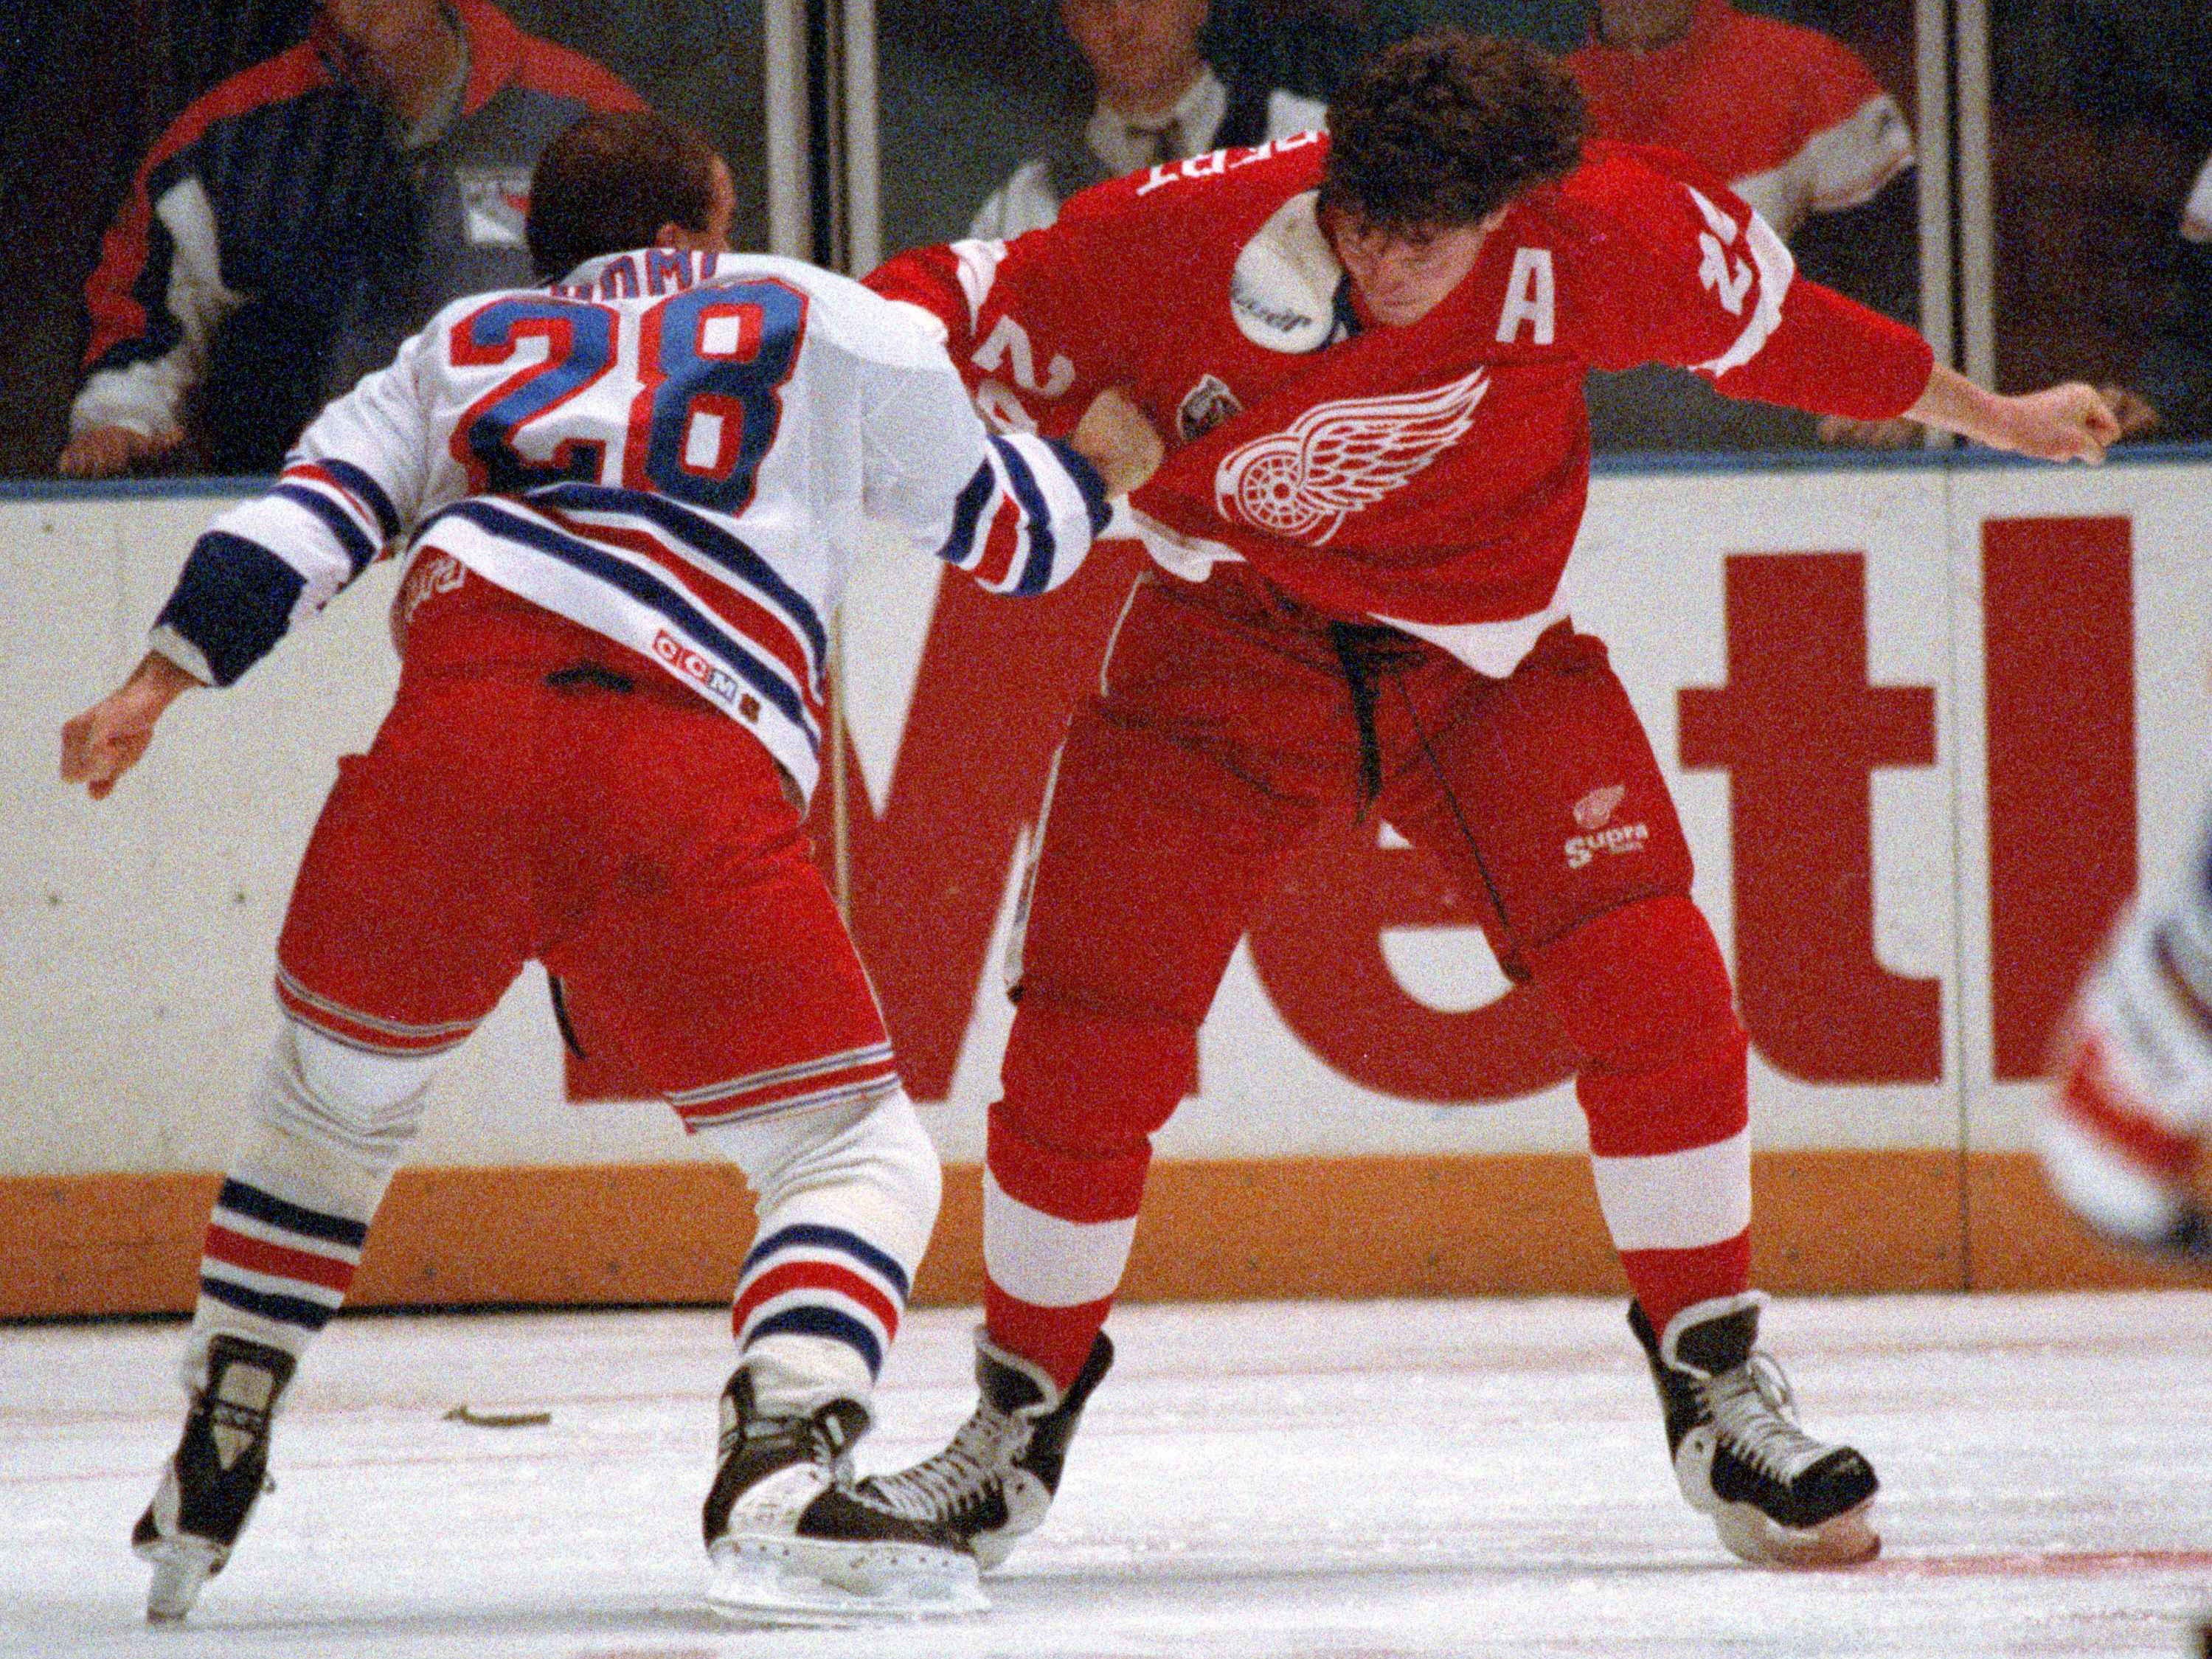 In this Dec. 2, 1992, file photo, the New York Rangers' Tie Domi (28) fights with Detroit Red Wings forward Bob Probert (24) less than a minute into the first period of a game at New York's Madison Square Garden.